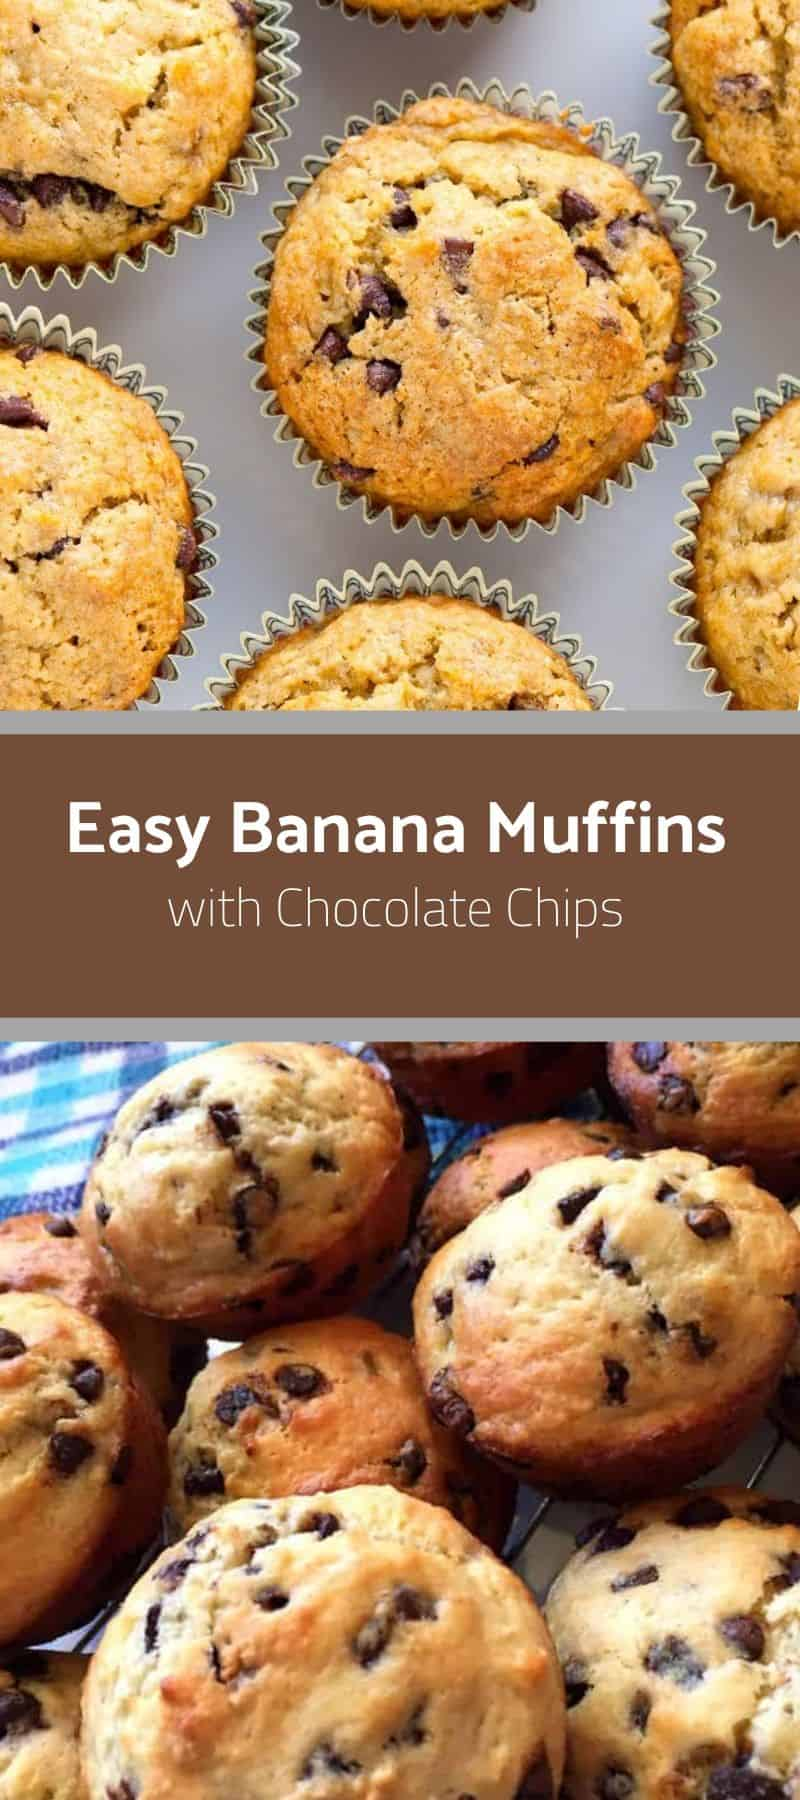 Easy Banana Muffins with Chocolate Chips 3